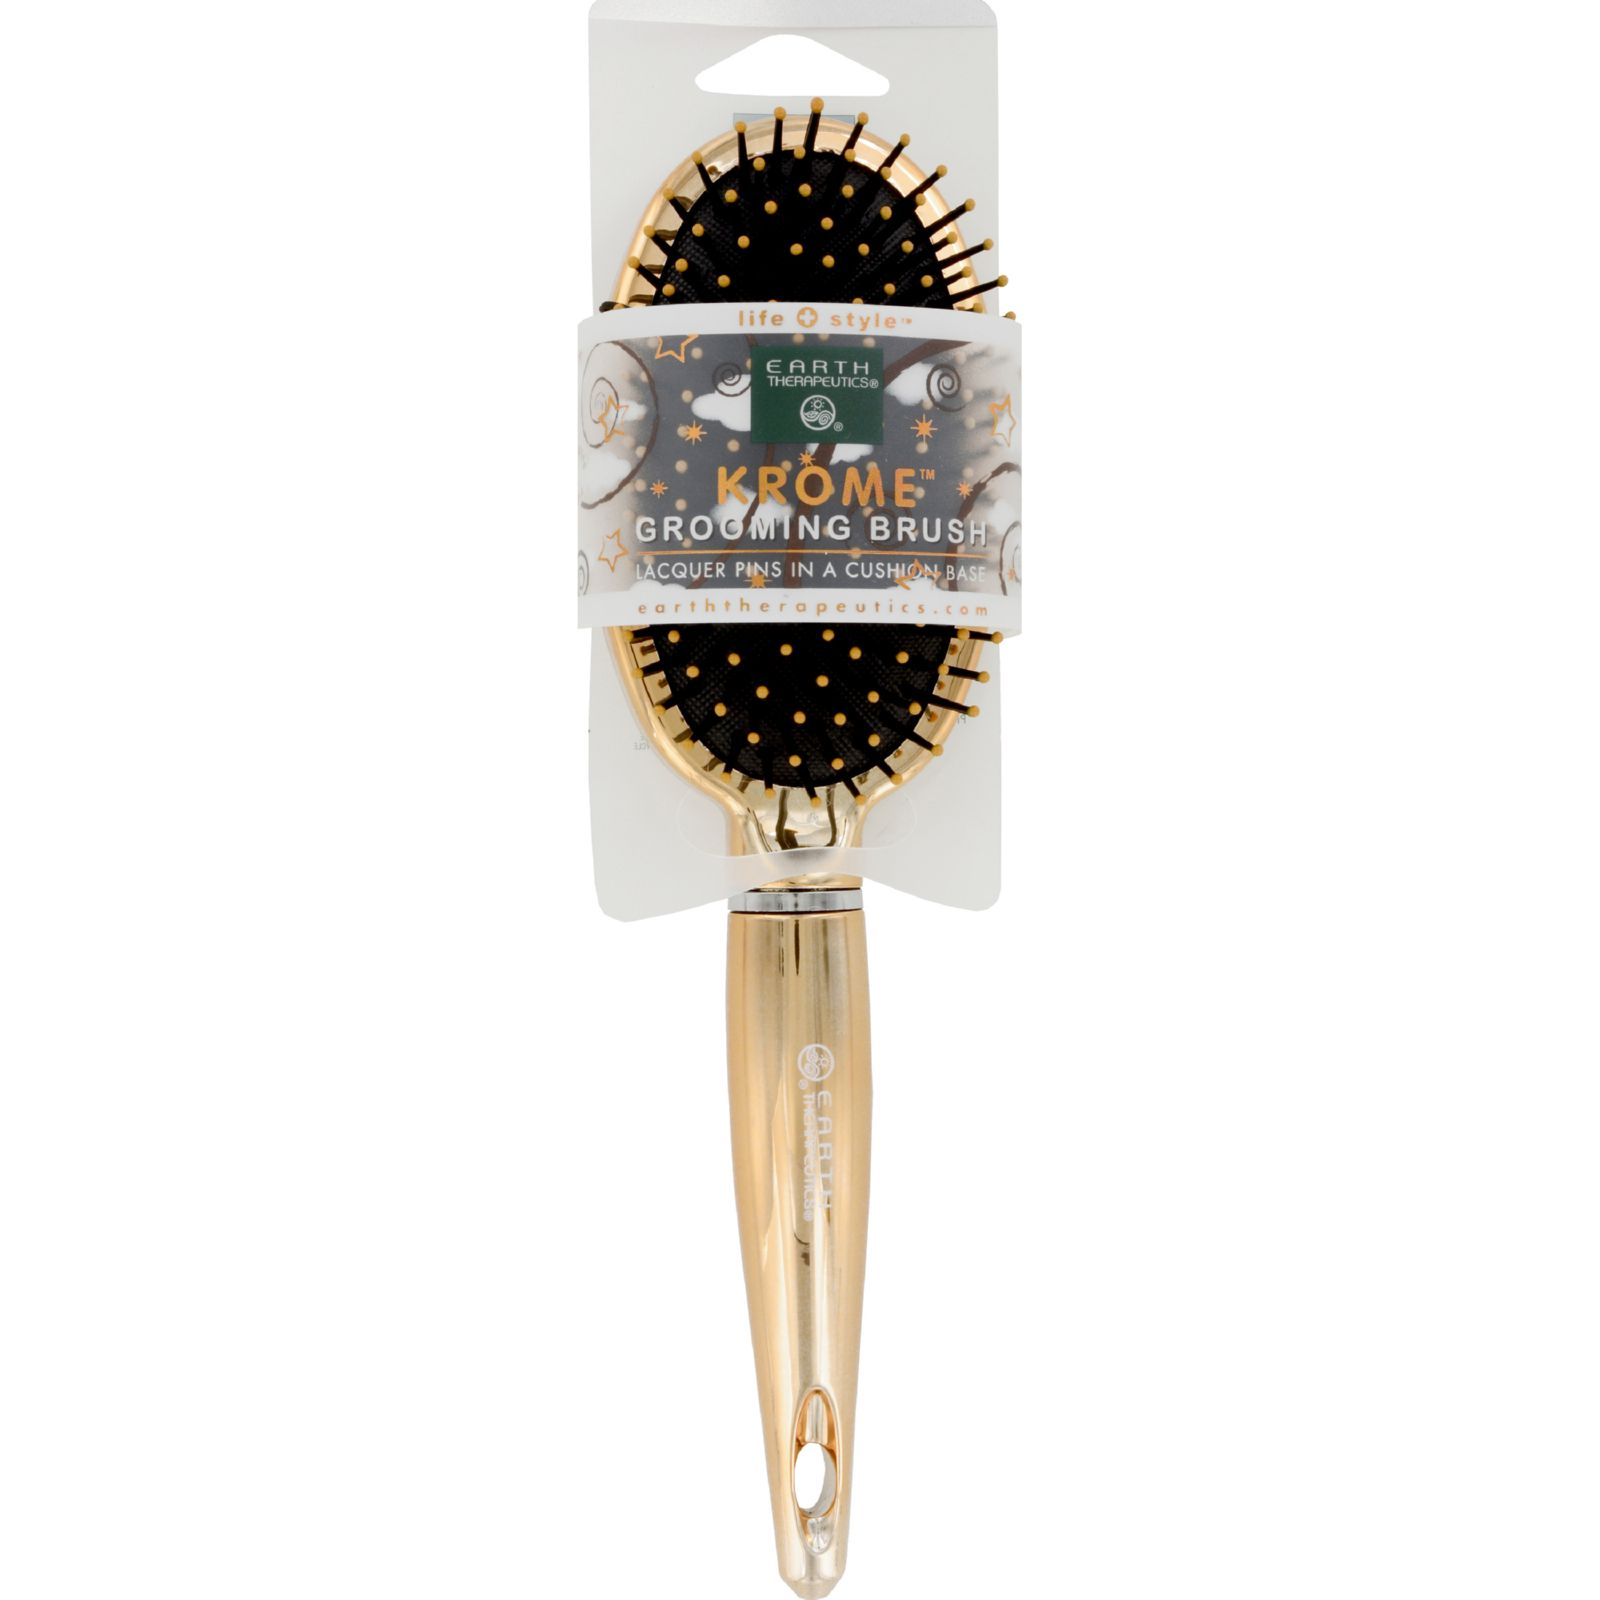 Earth Therapeutics Hair Brush - Cushion - Krome - Metallic Gold - 1 Count